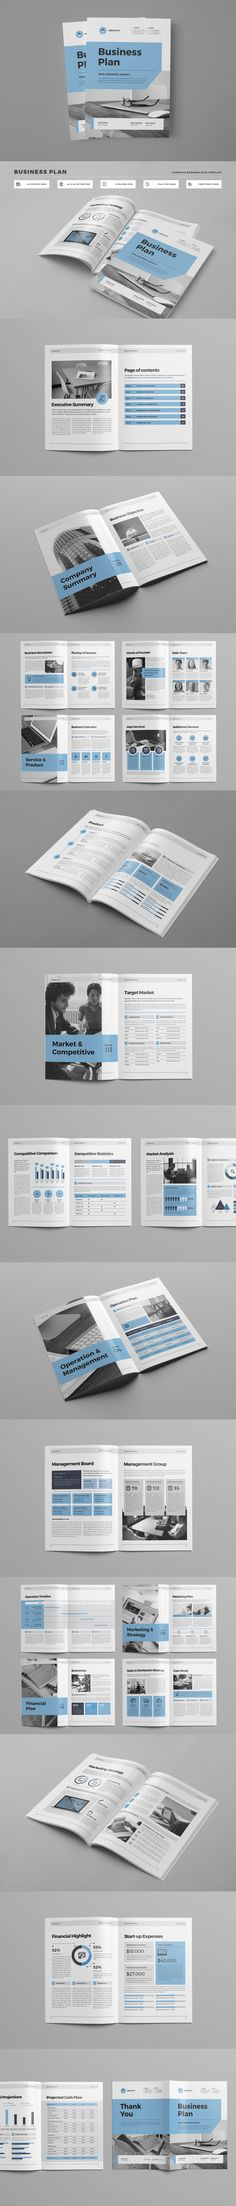 Clean & Professional Complete Business Plan Brochure Template INDD With Include A4 & US Letter Size